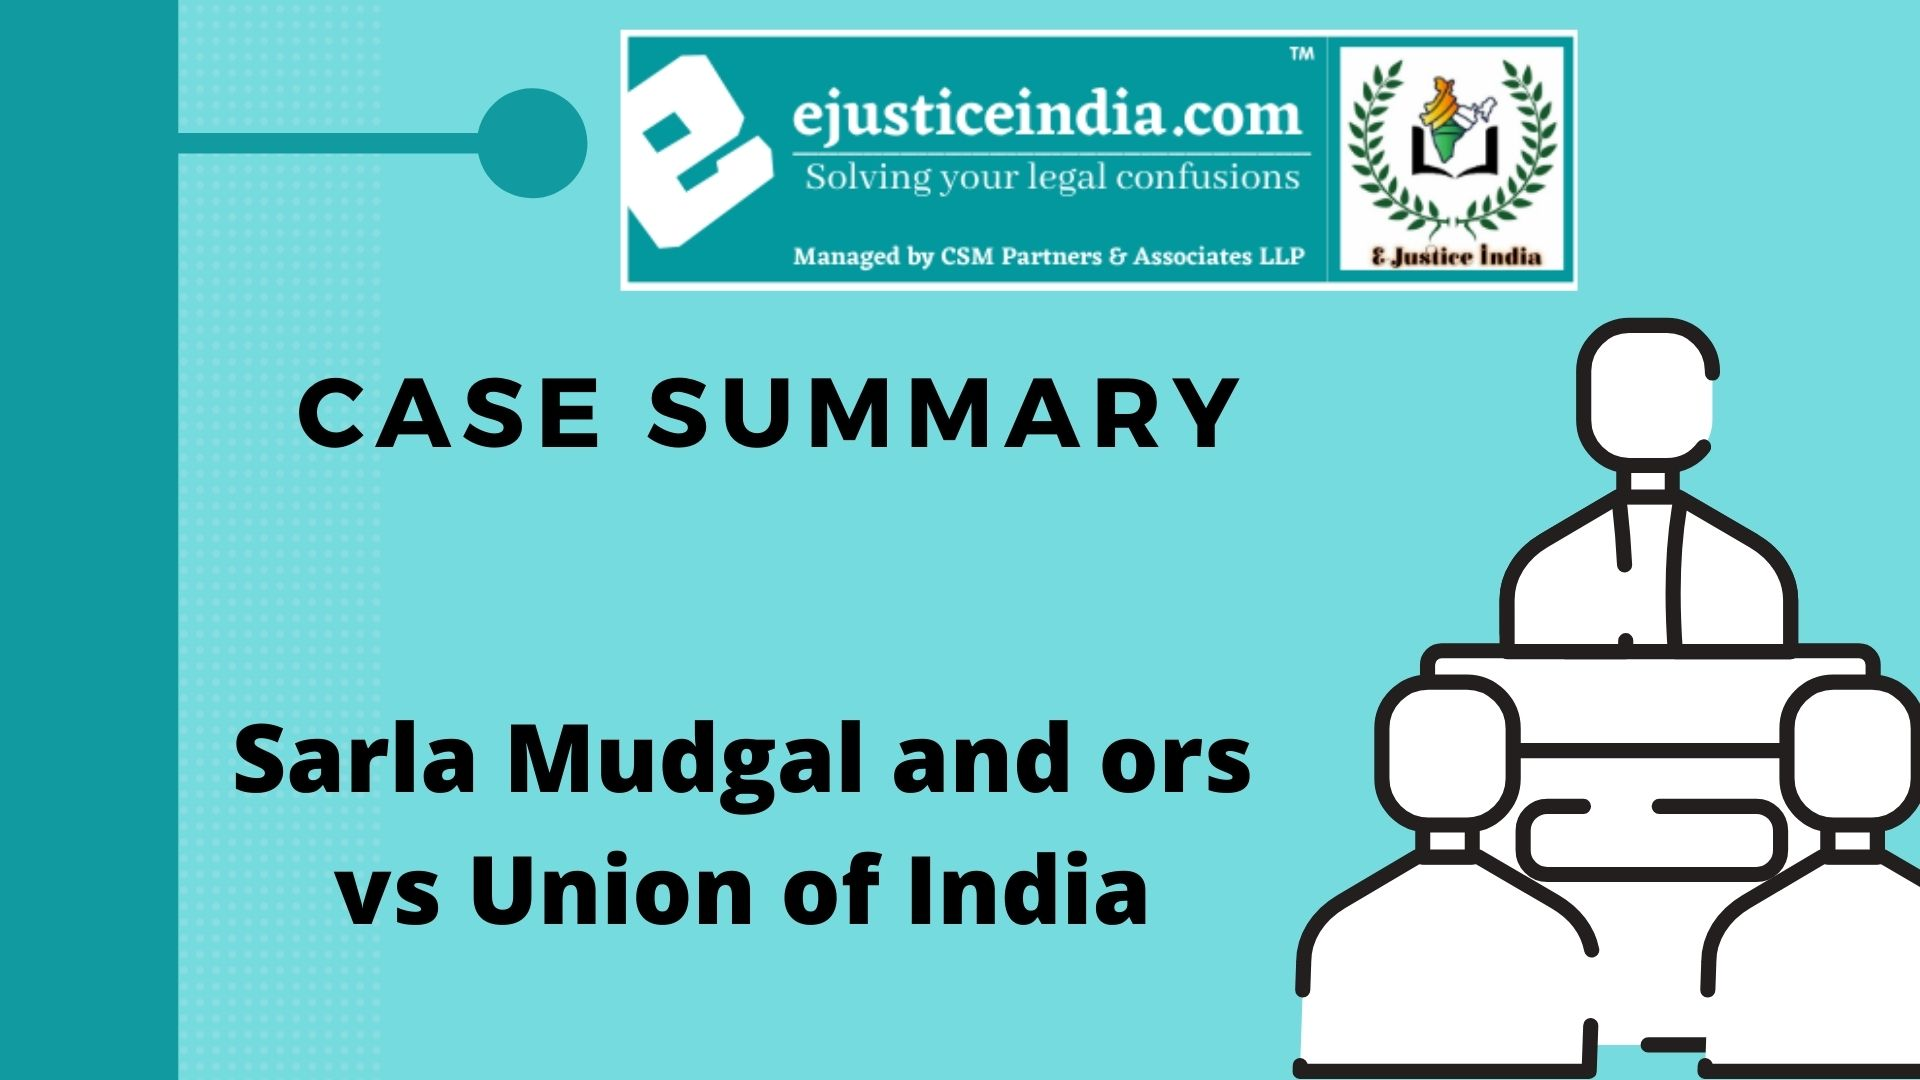 Sarla Mudgal and ors vs Union of India